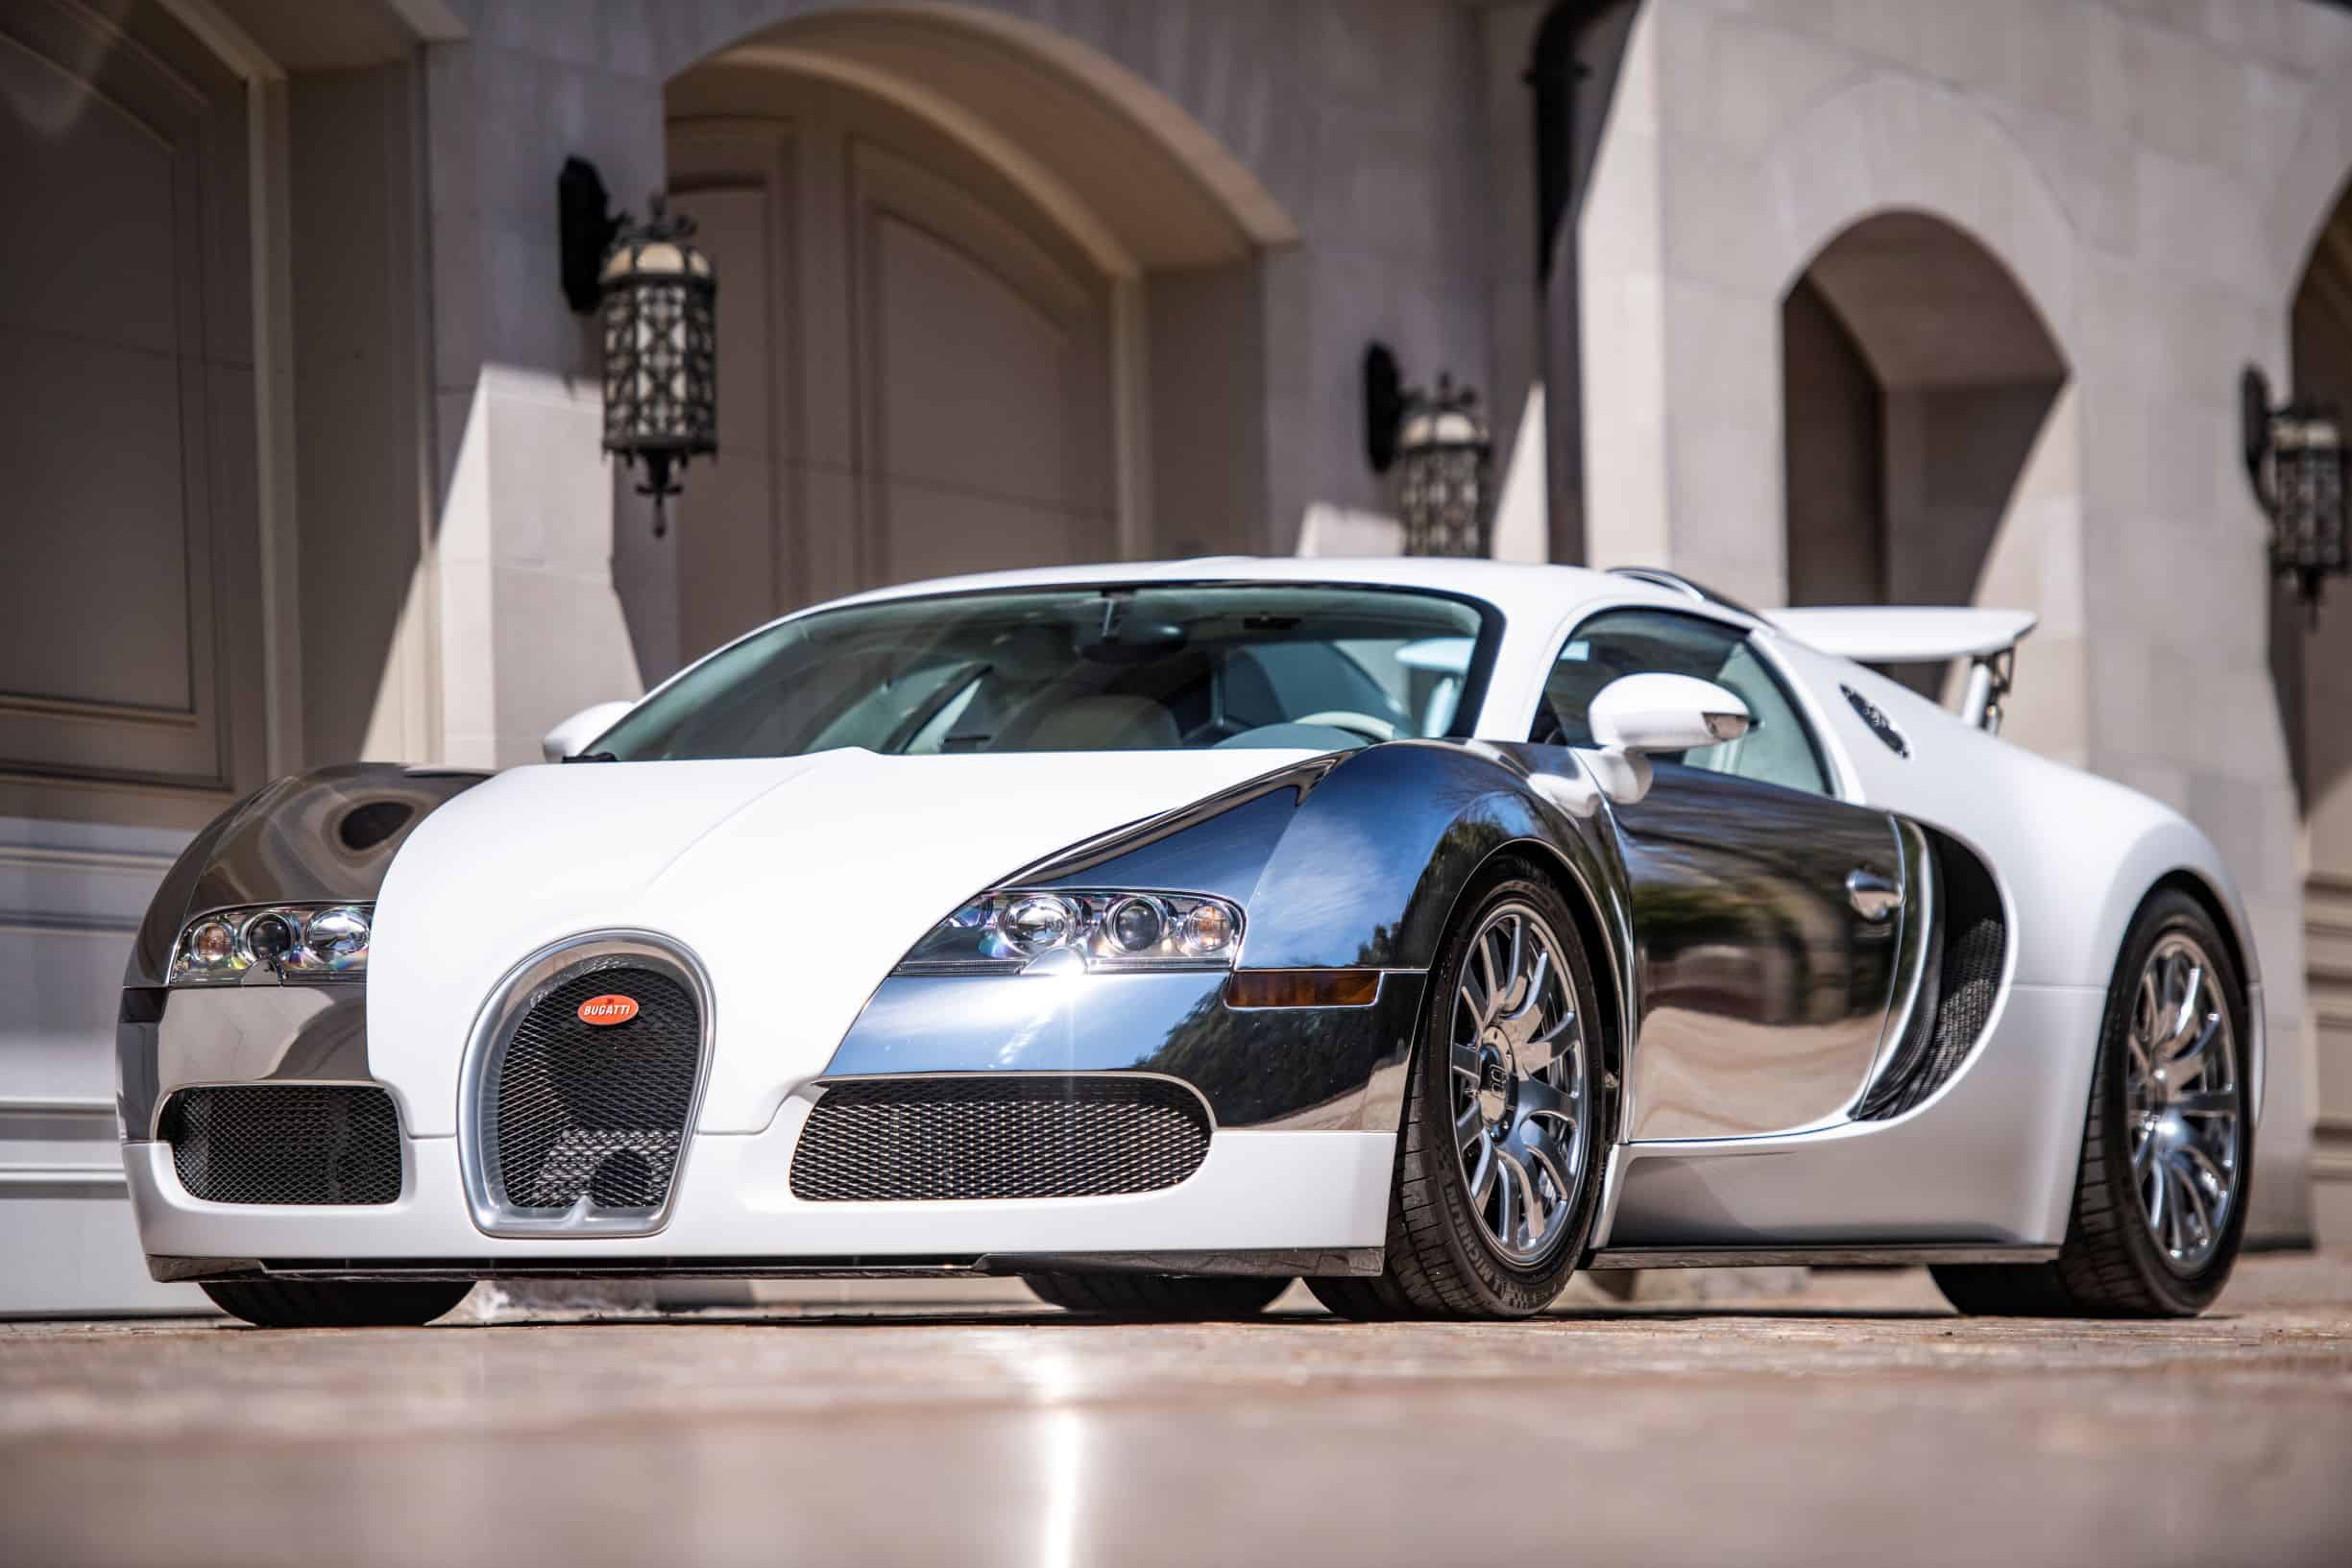 Bugatti Veyron previously owned by Flloyd Mayweather